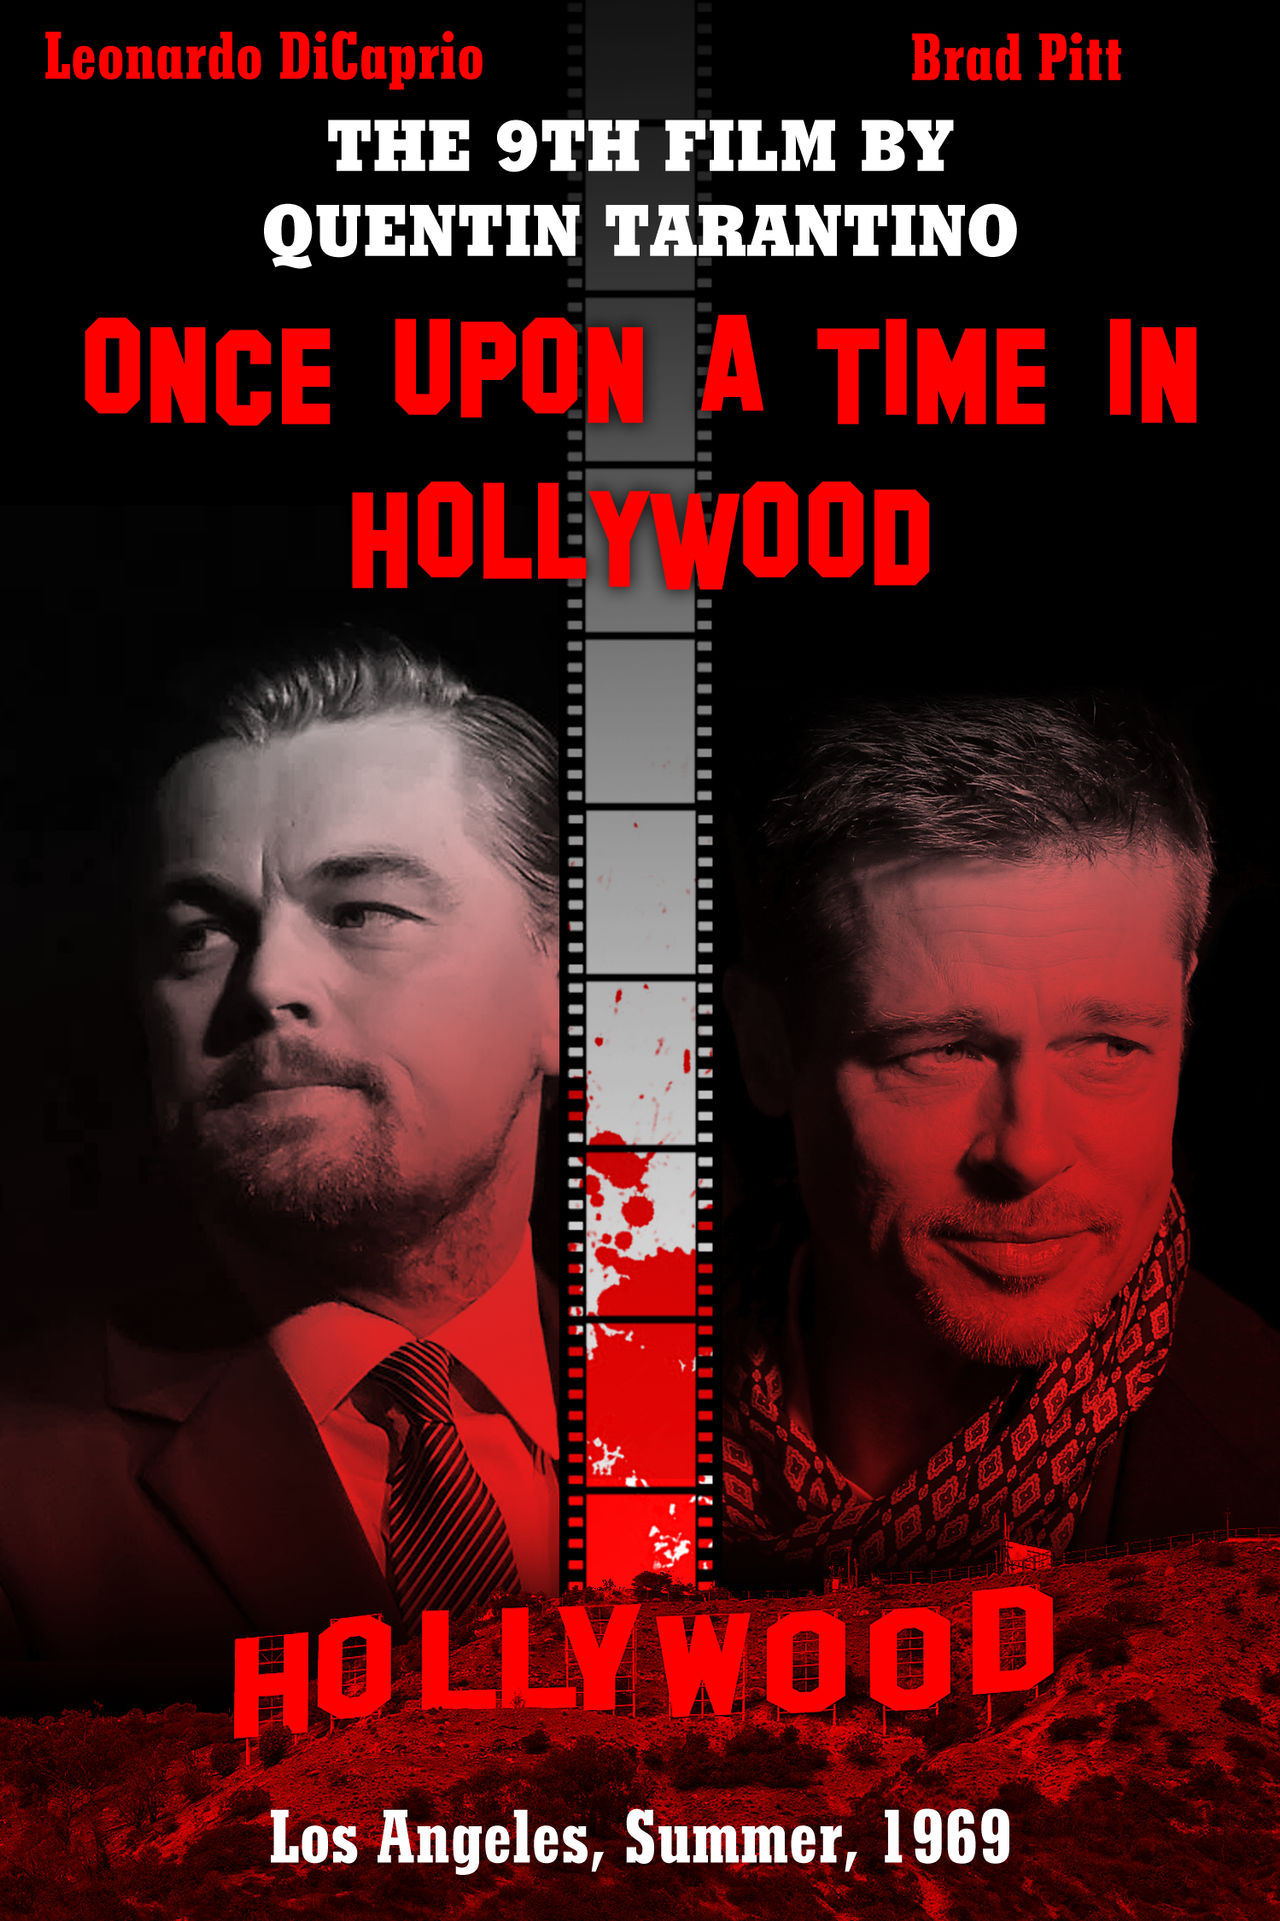 Once Upon a Time in Hollywood fan-poster by Nicksplosivez